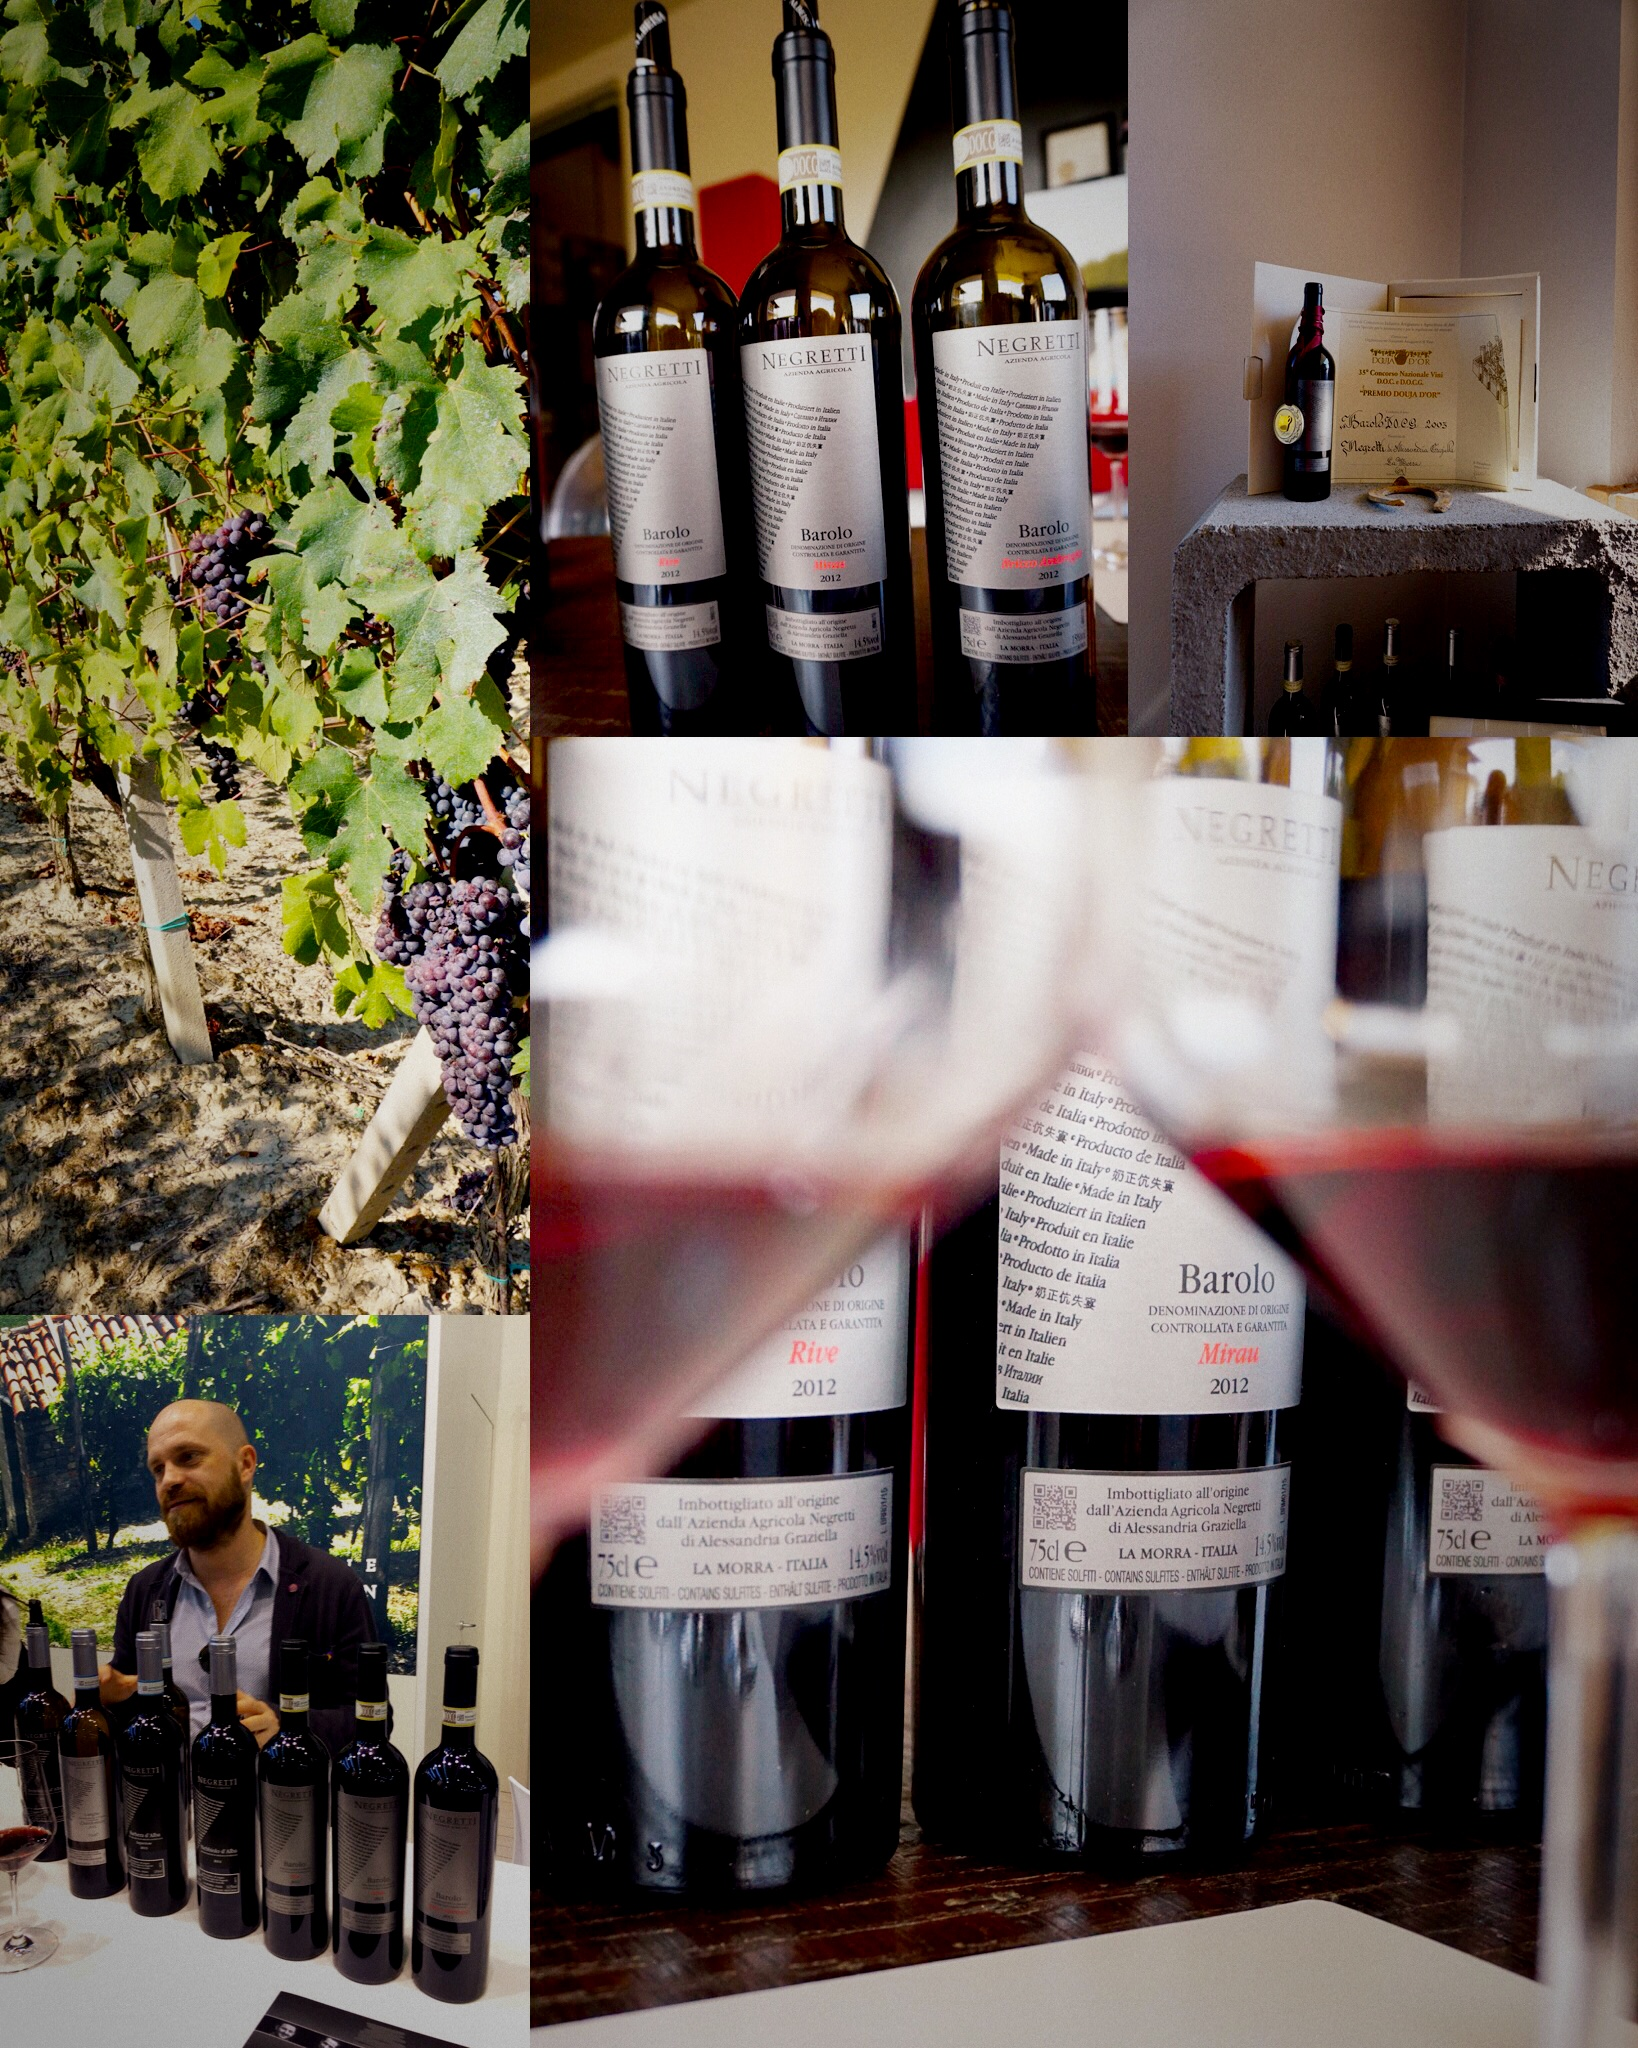 Negretti Barolo -Vertical Tasting (multiple vintages) - At French Table